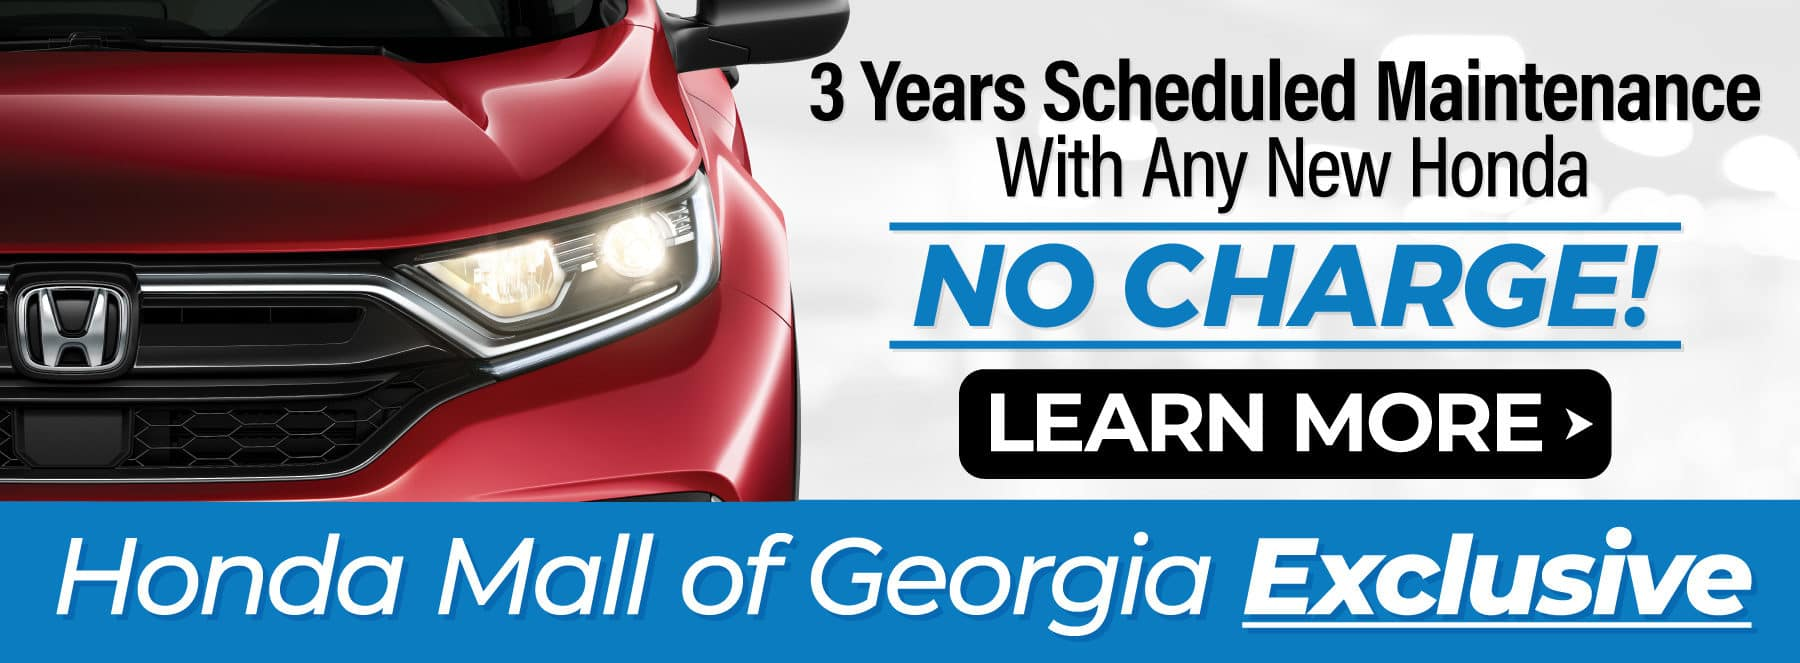 3 Years Scheduled Maintenance with any new Honda at no charge | Learn More